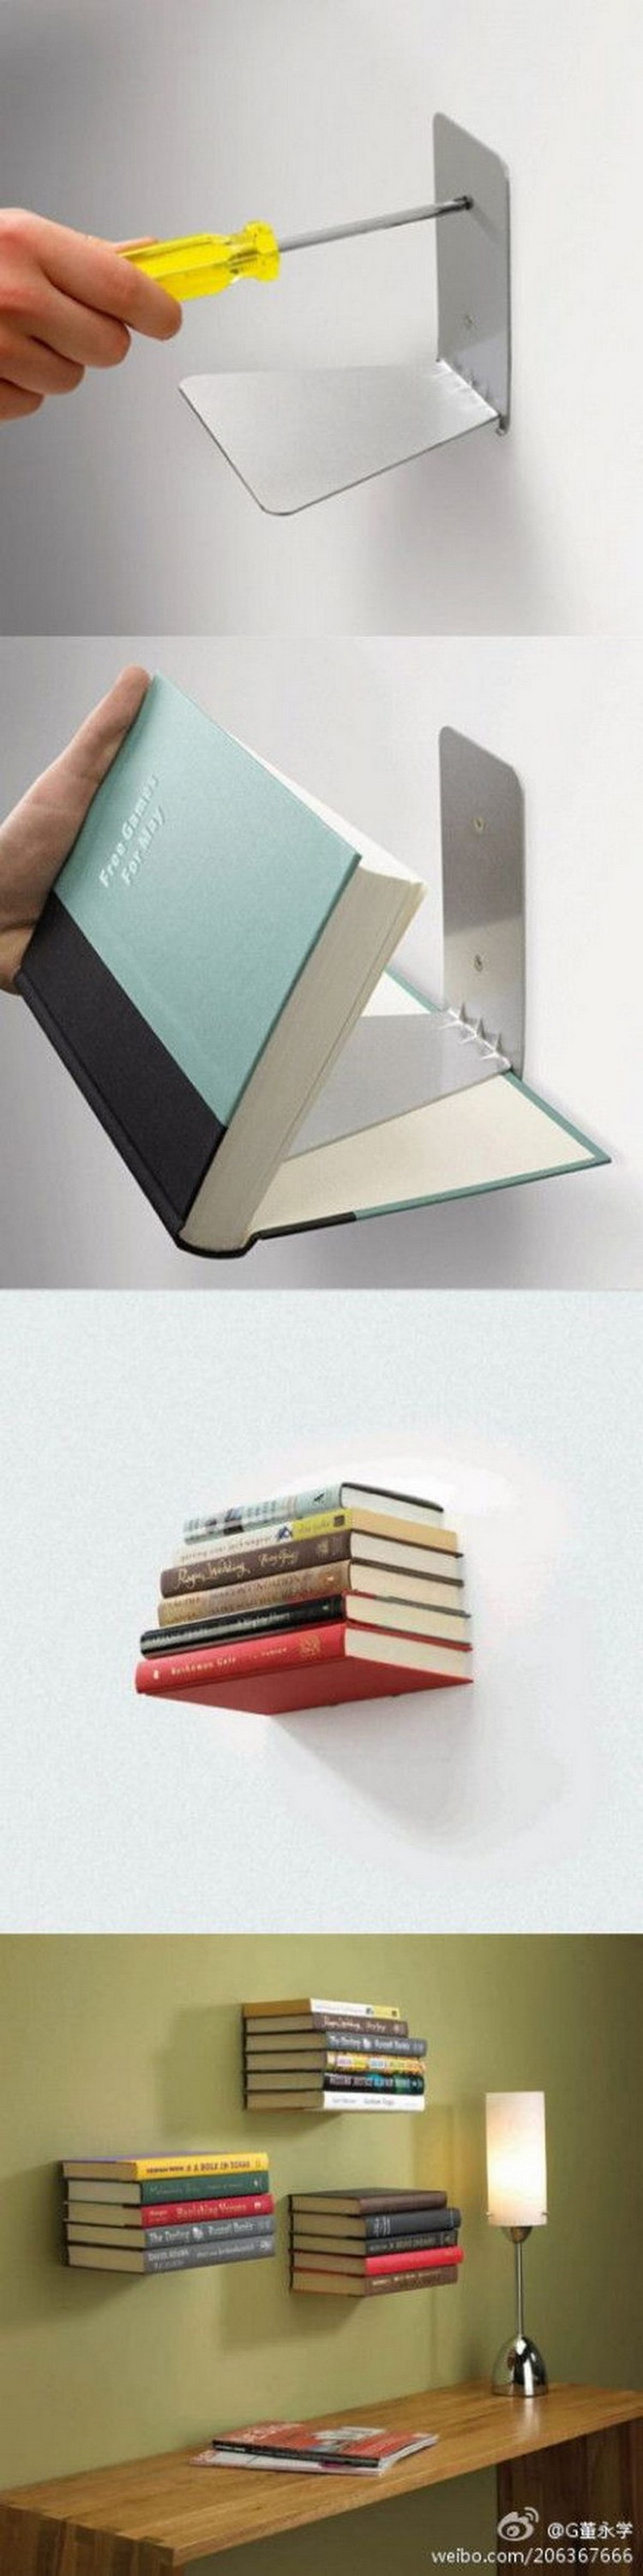 DIY Recycled Books Wall Shelves